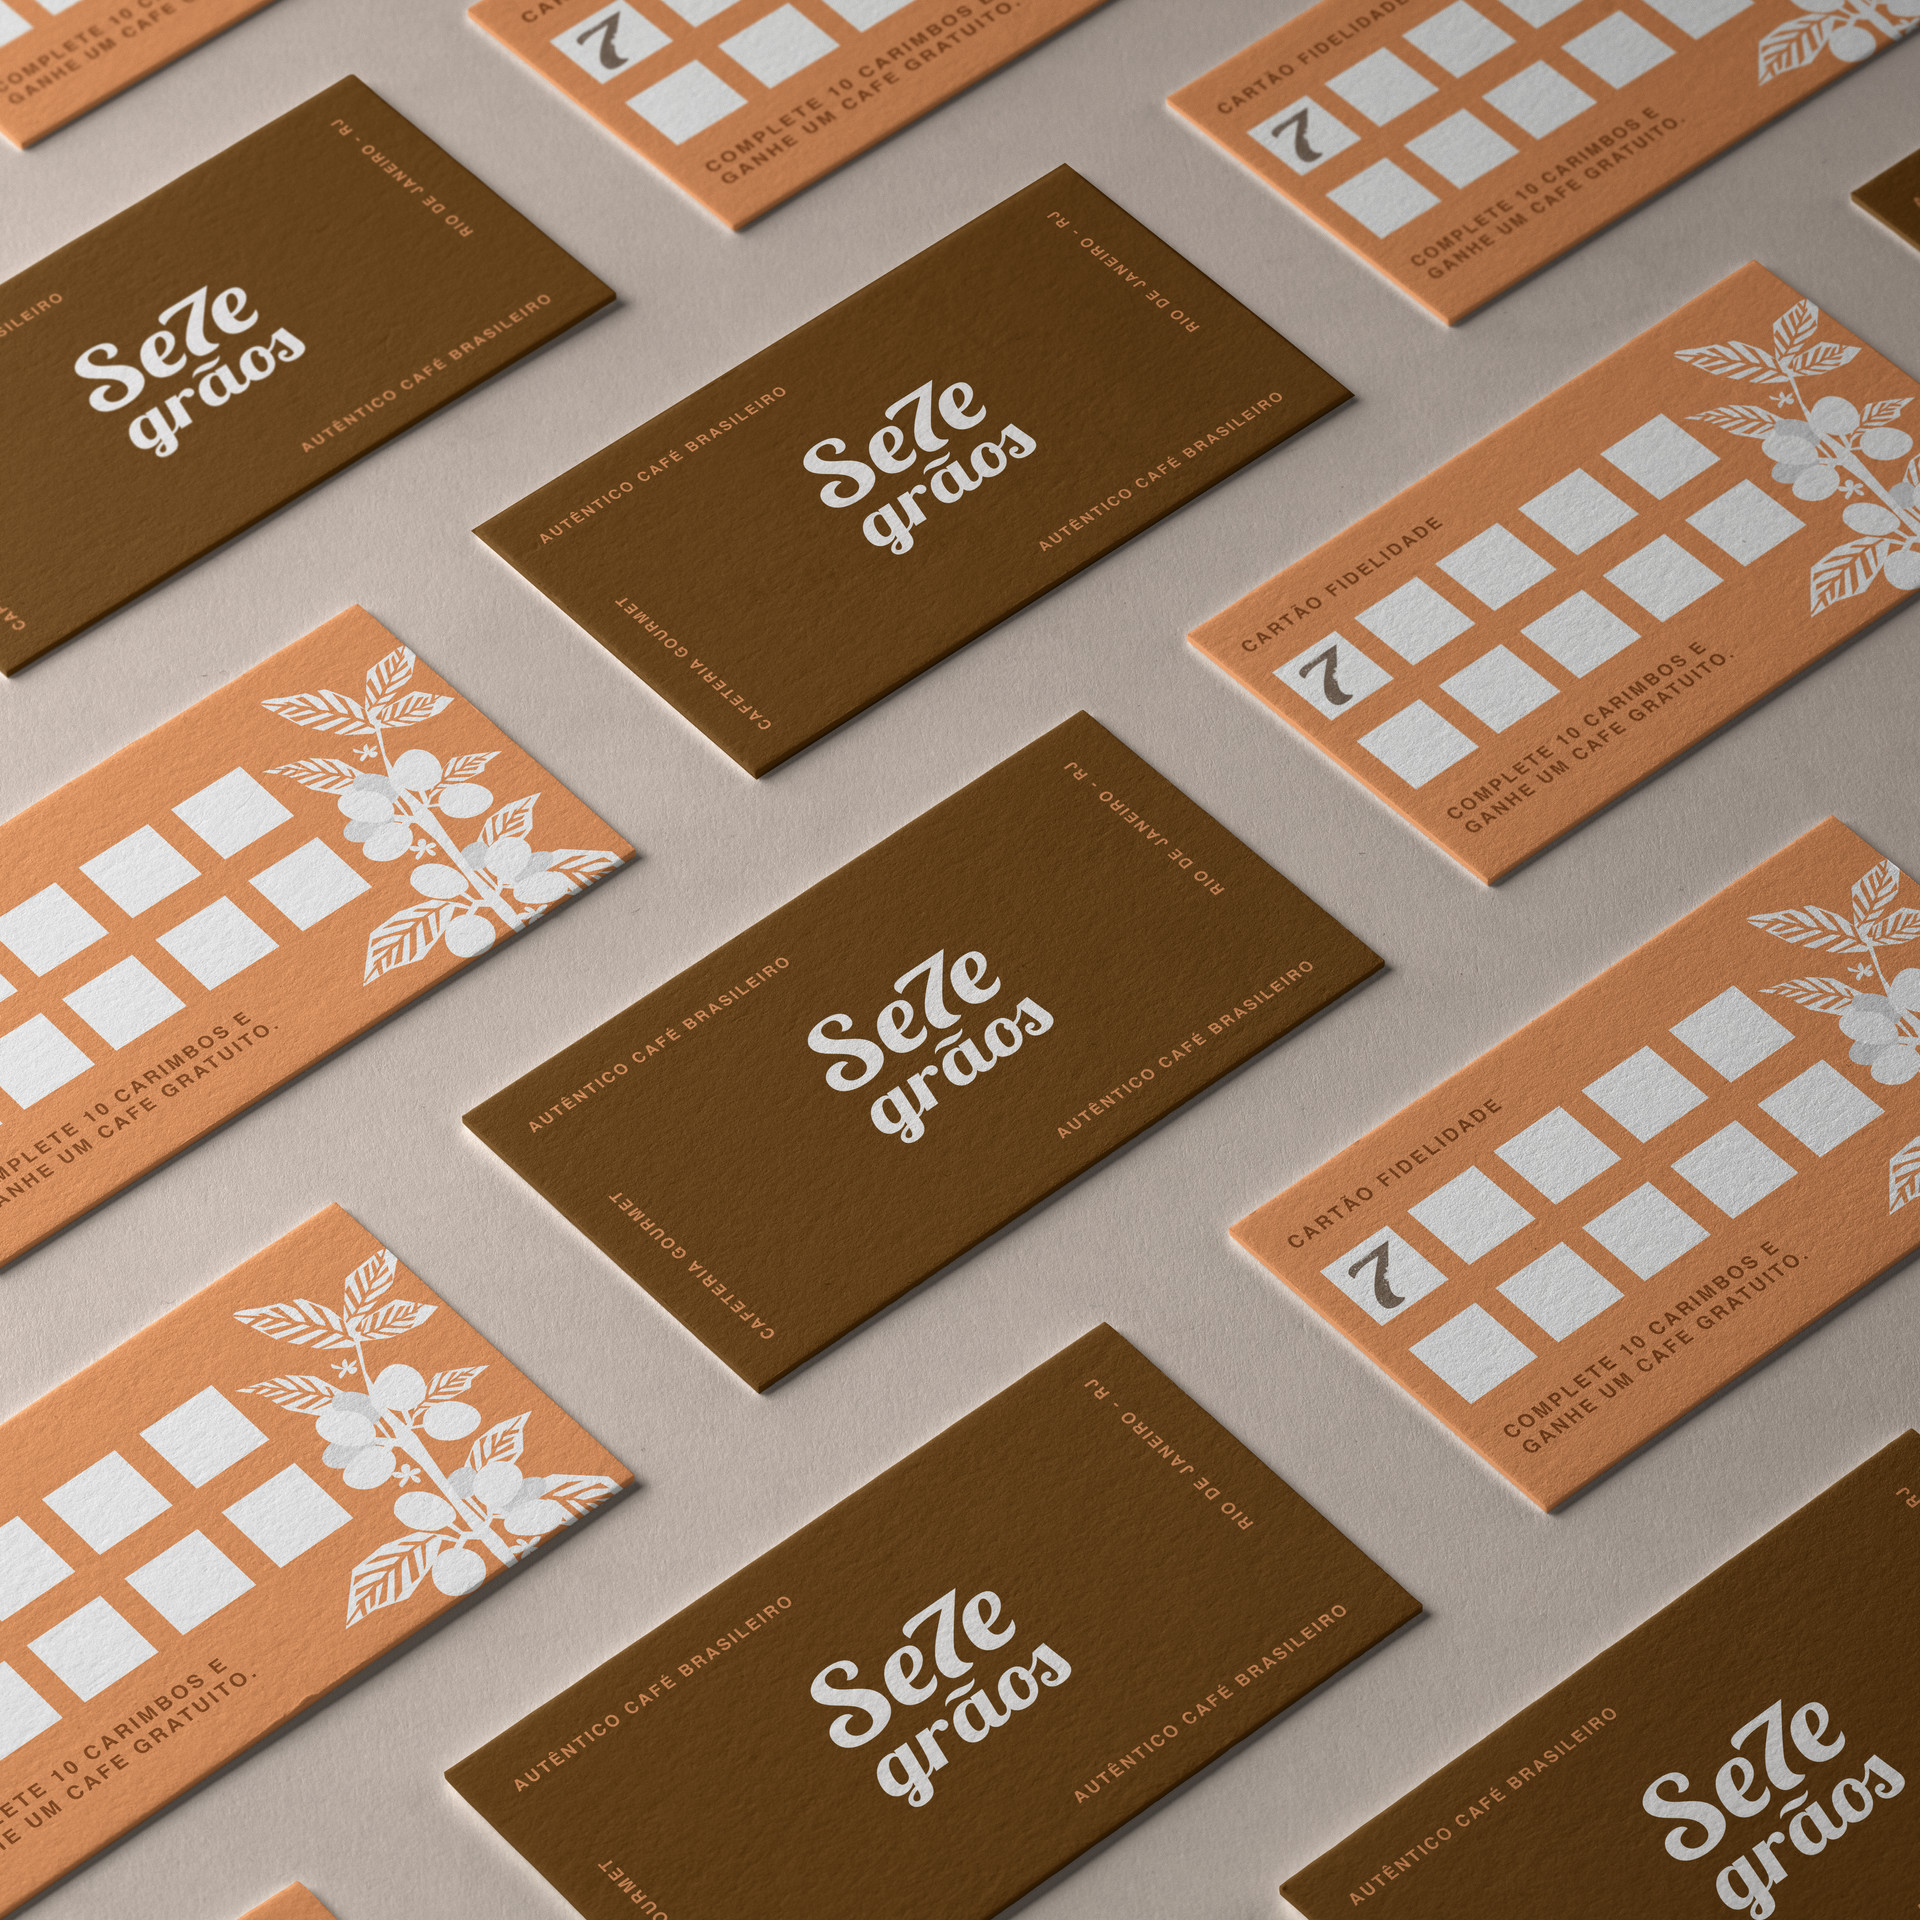 7 Grãos Coffee Shop Loyalty Cards